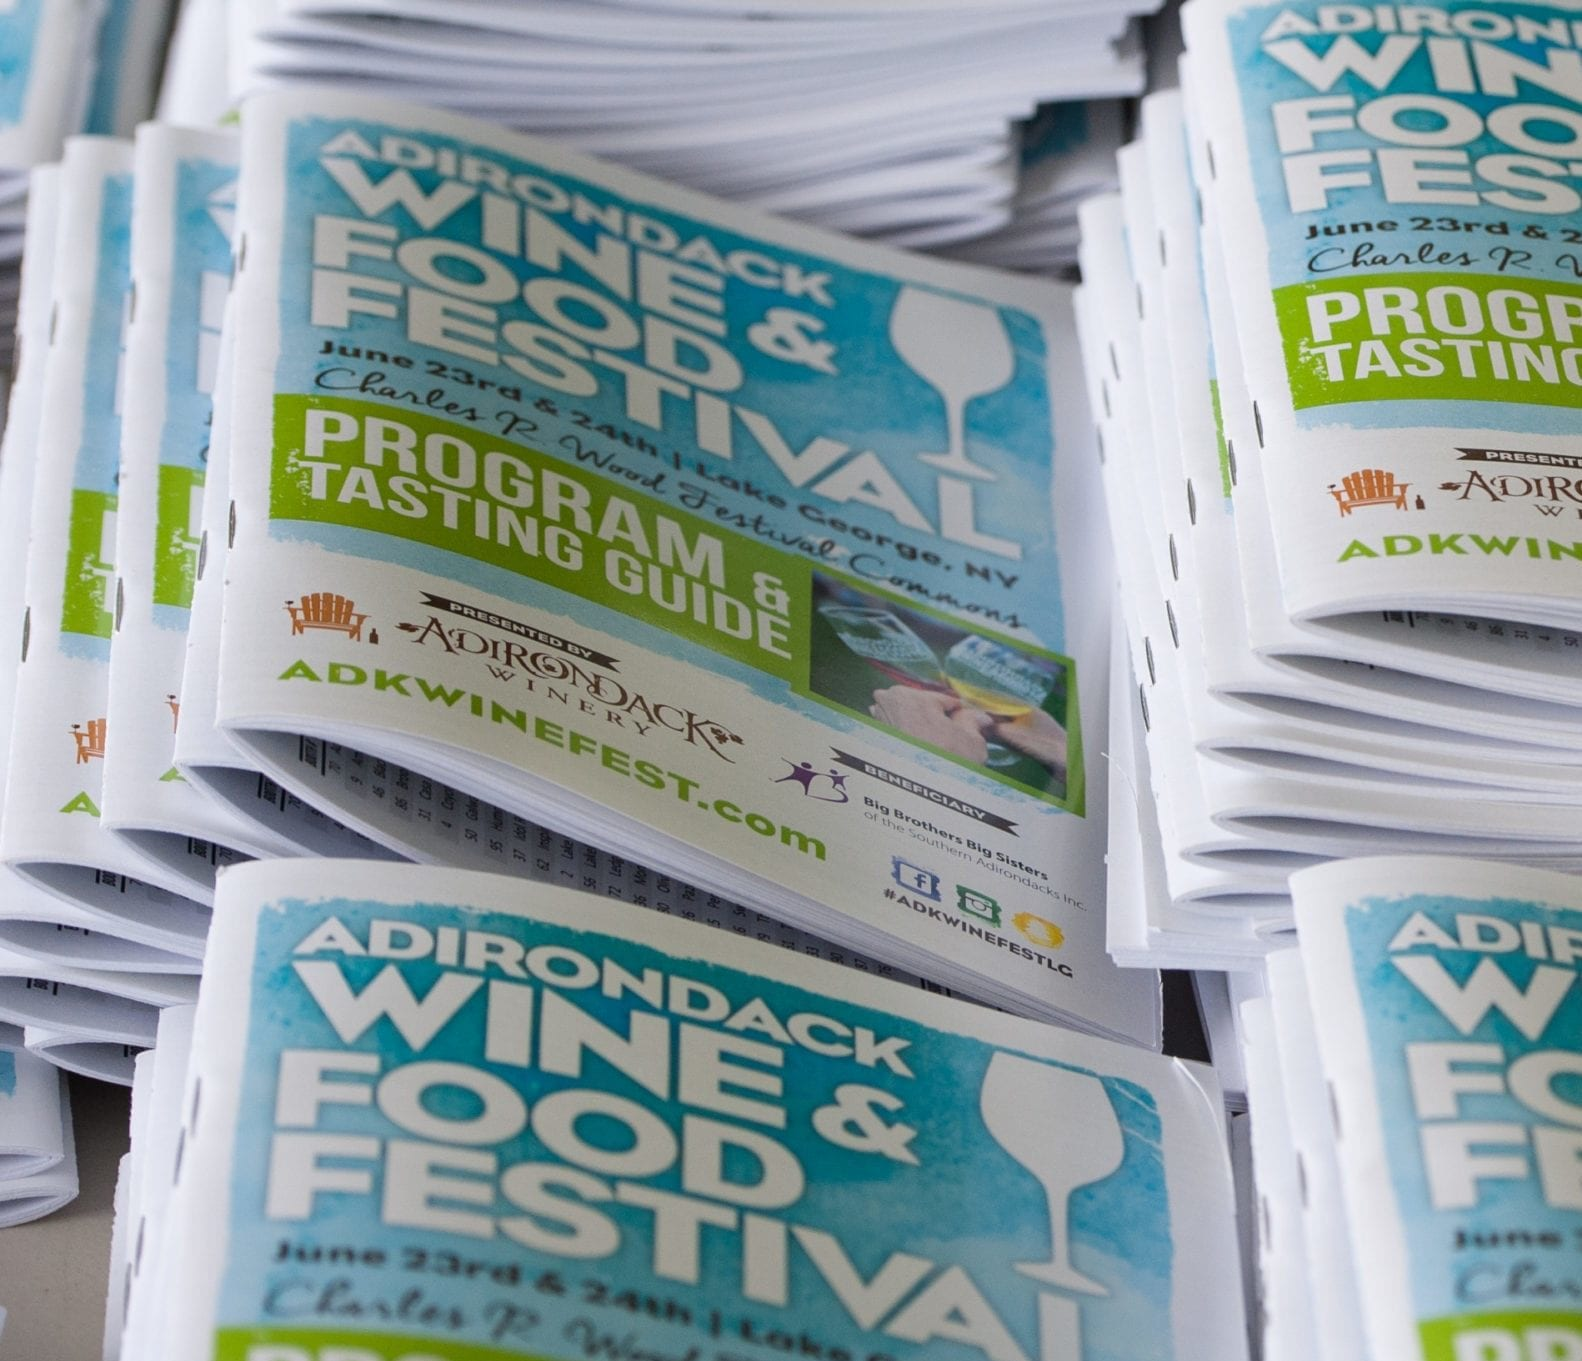 The Festival Program that is included in the DD/Underage ticket provided by M&M Digital Printing